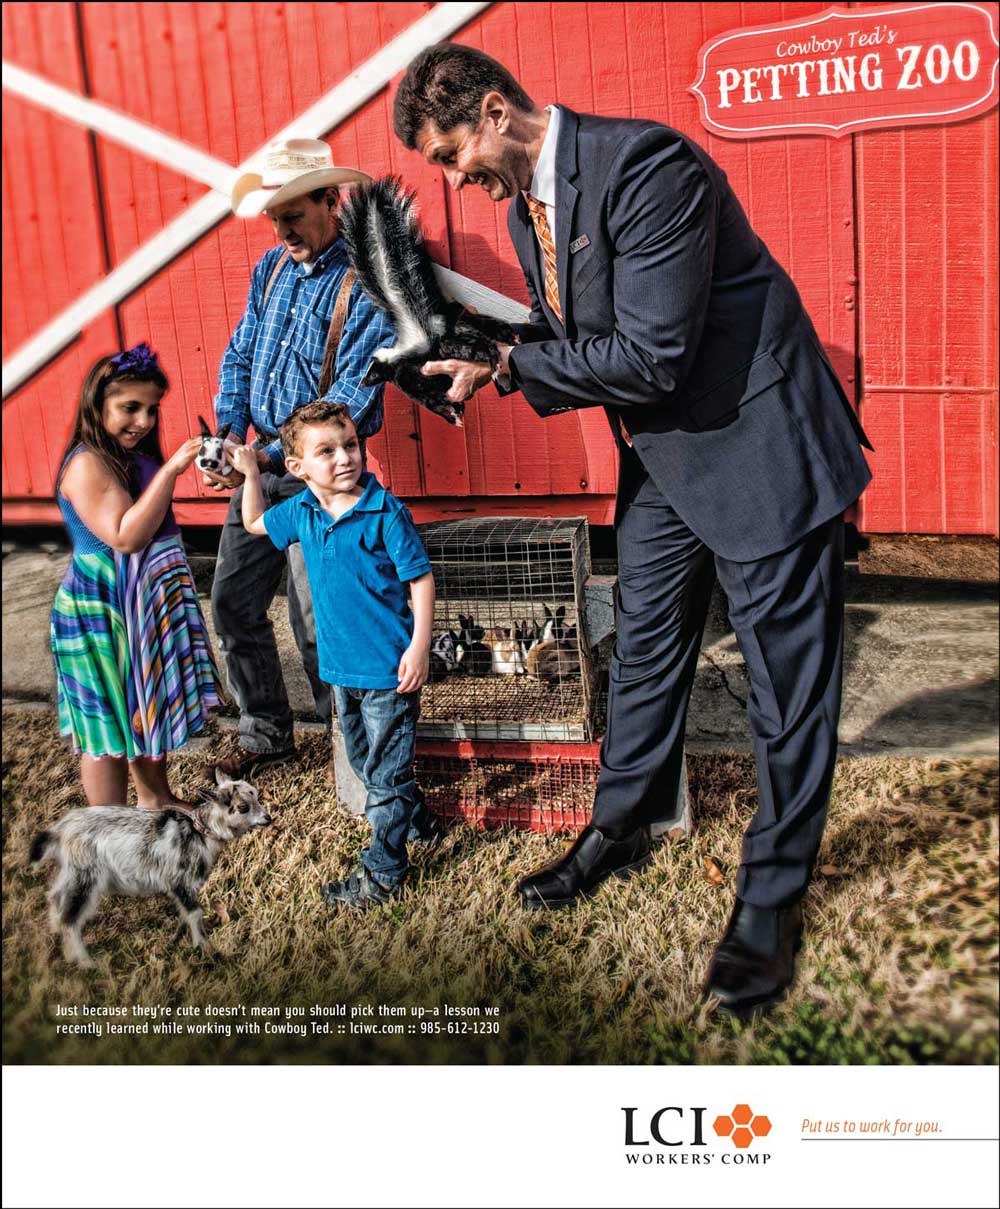 LCI Petting Zoo Ad Put Us To Work For You campaign